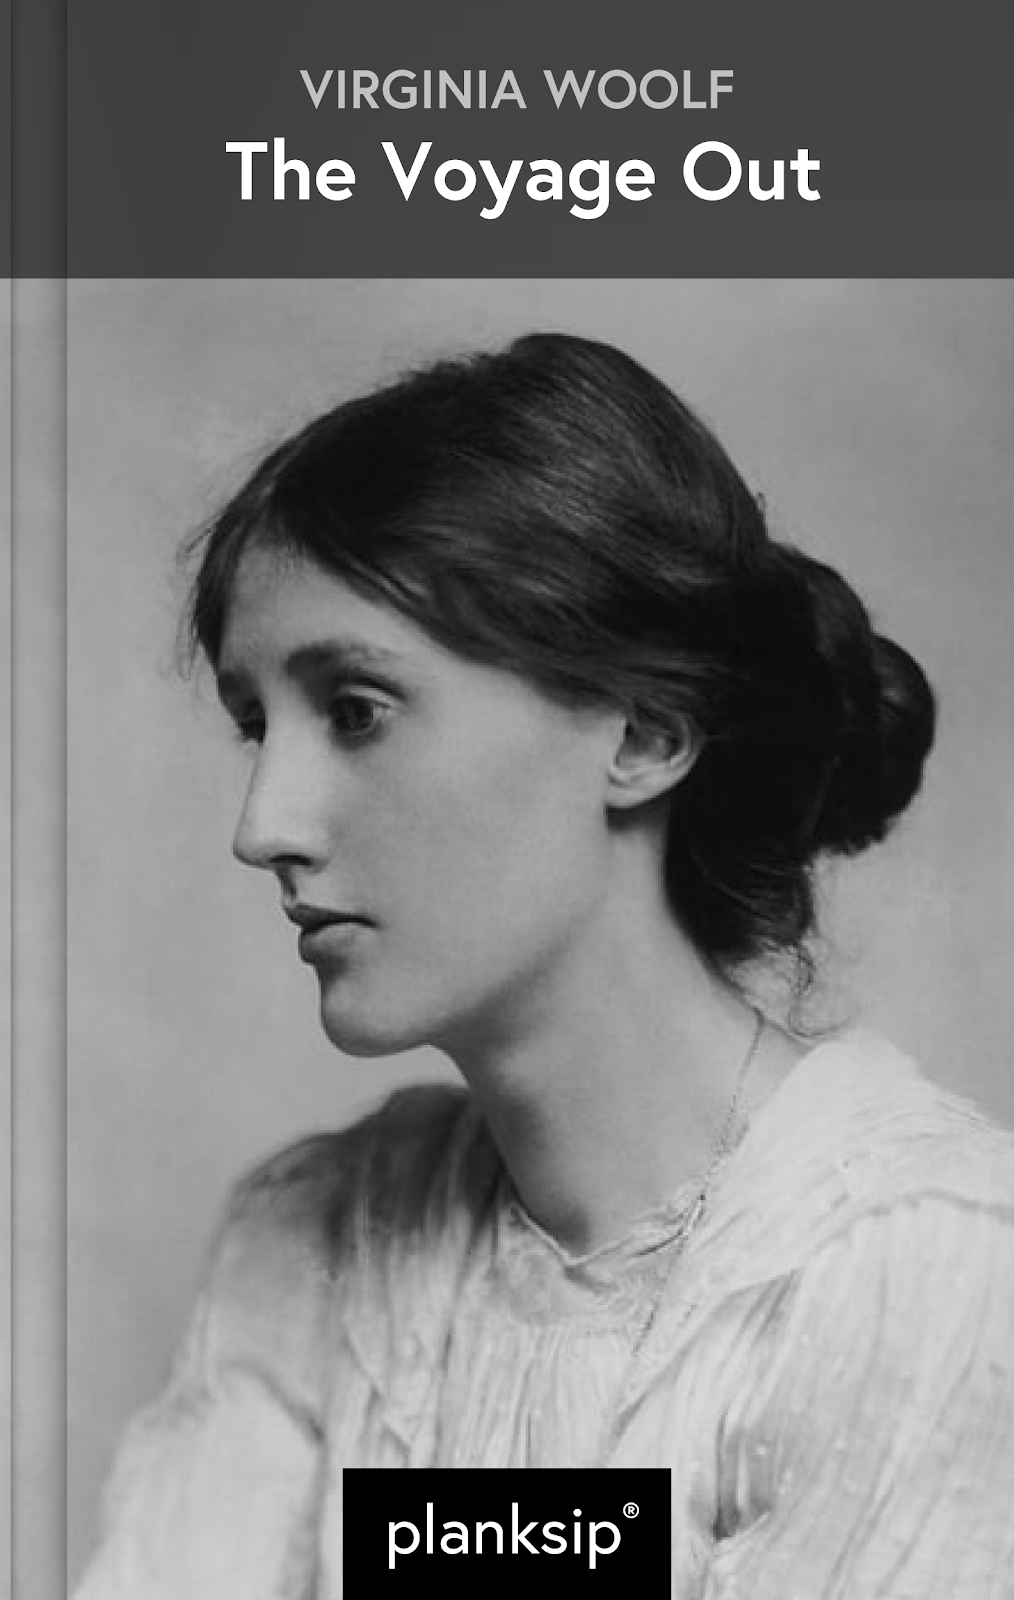 The Voyage Out by Virginia Woolf (1882-1941). Published by planksip